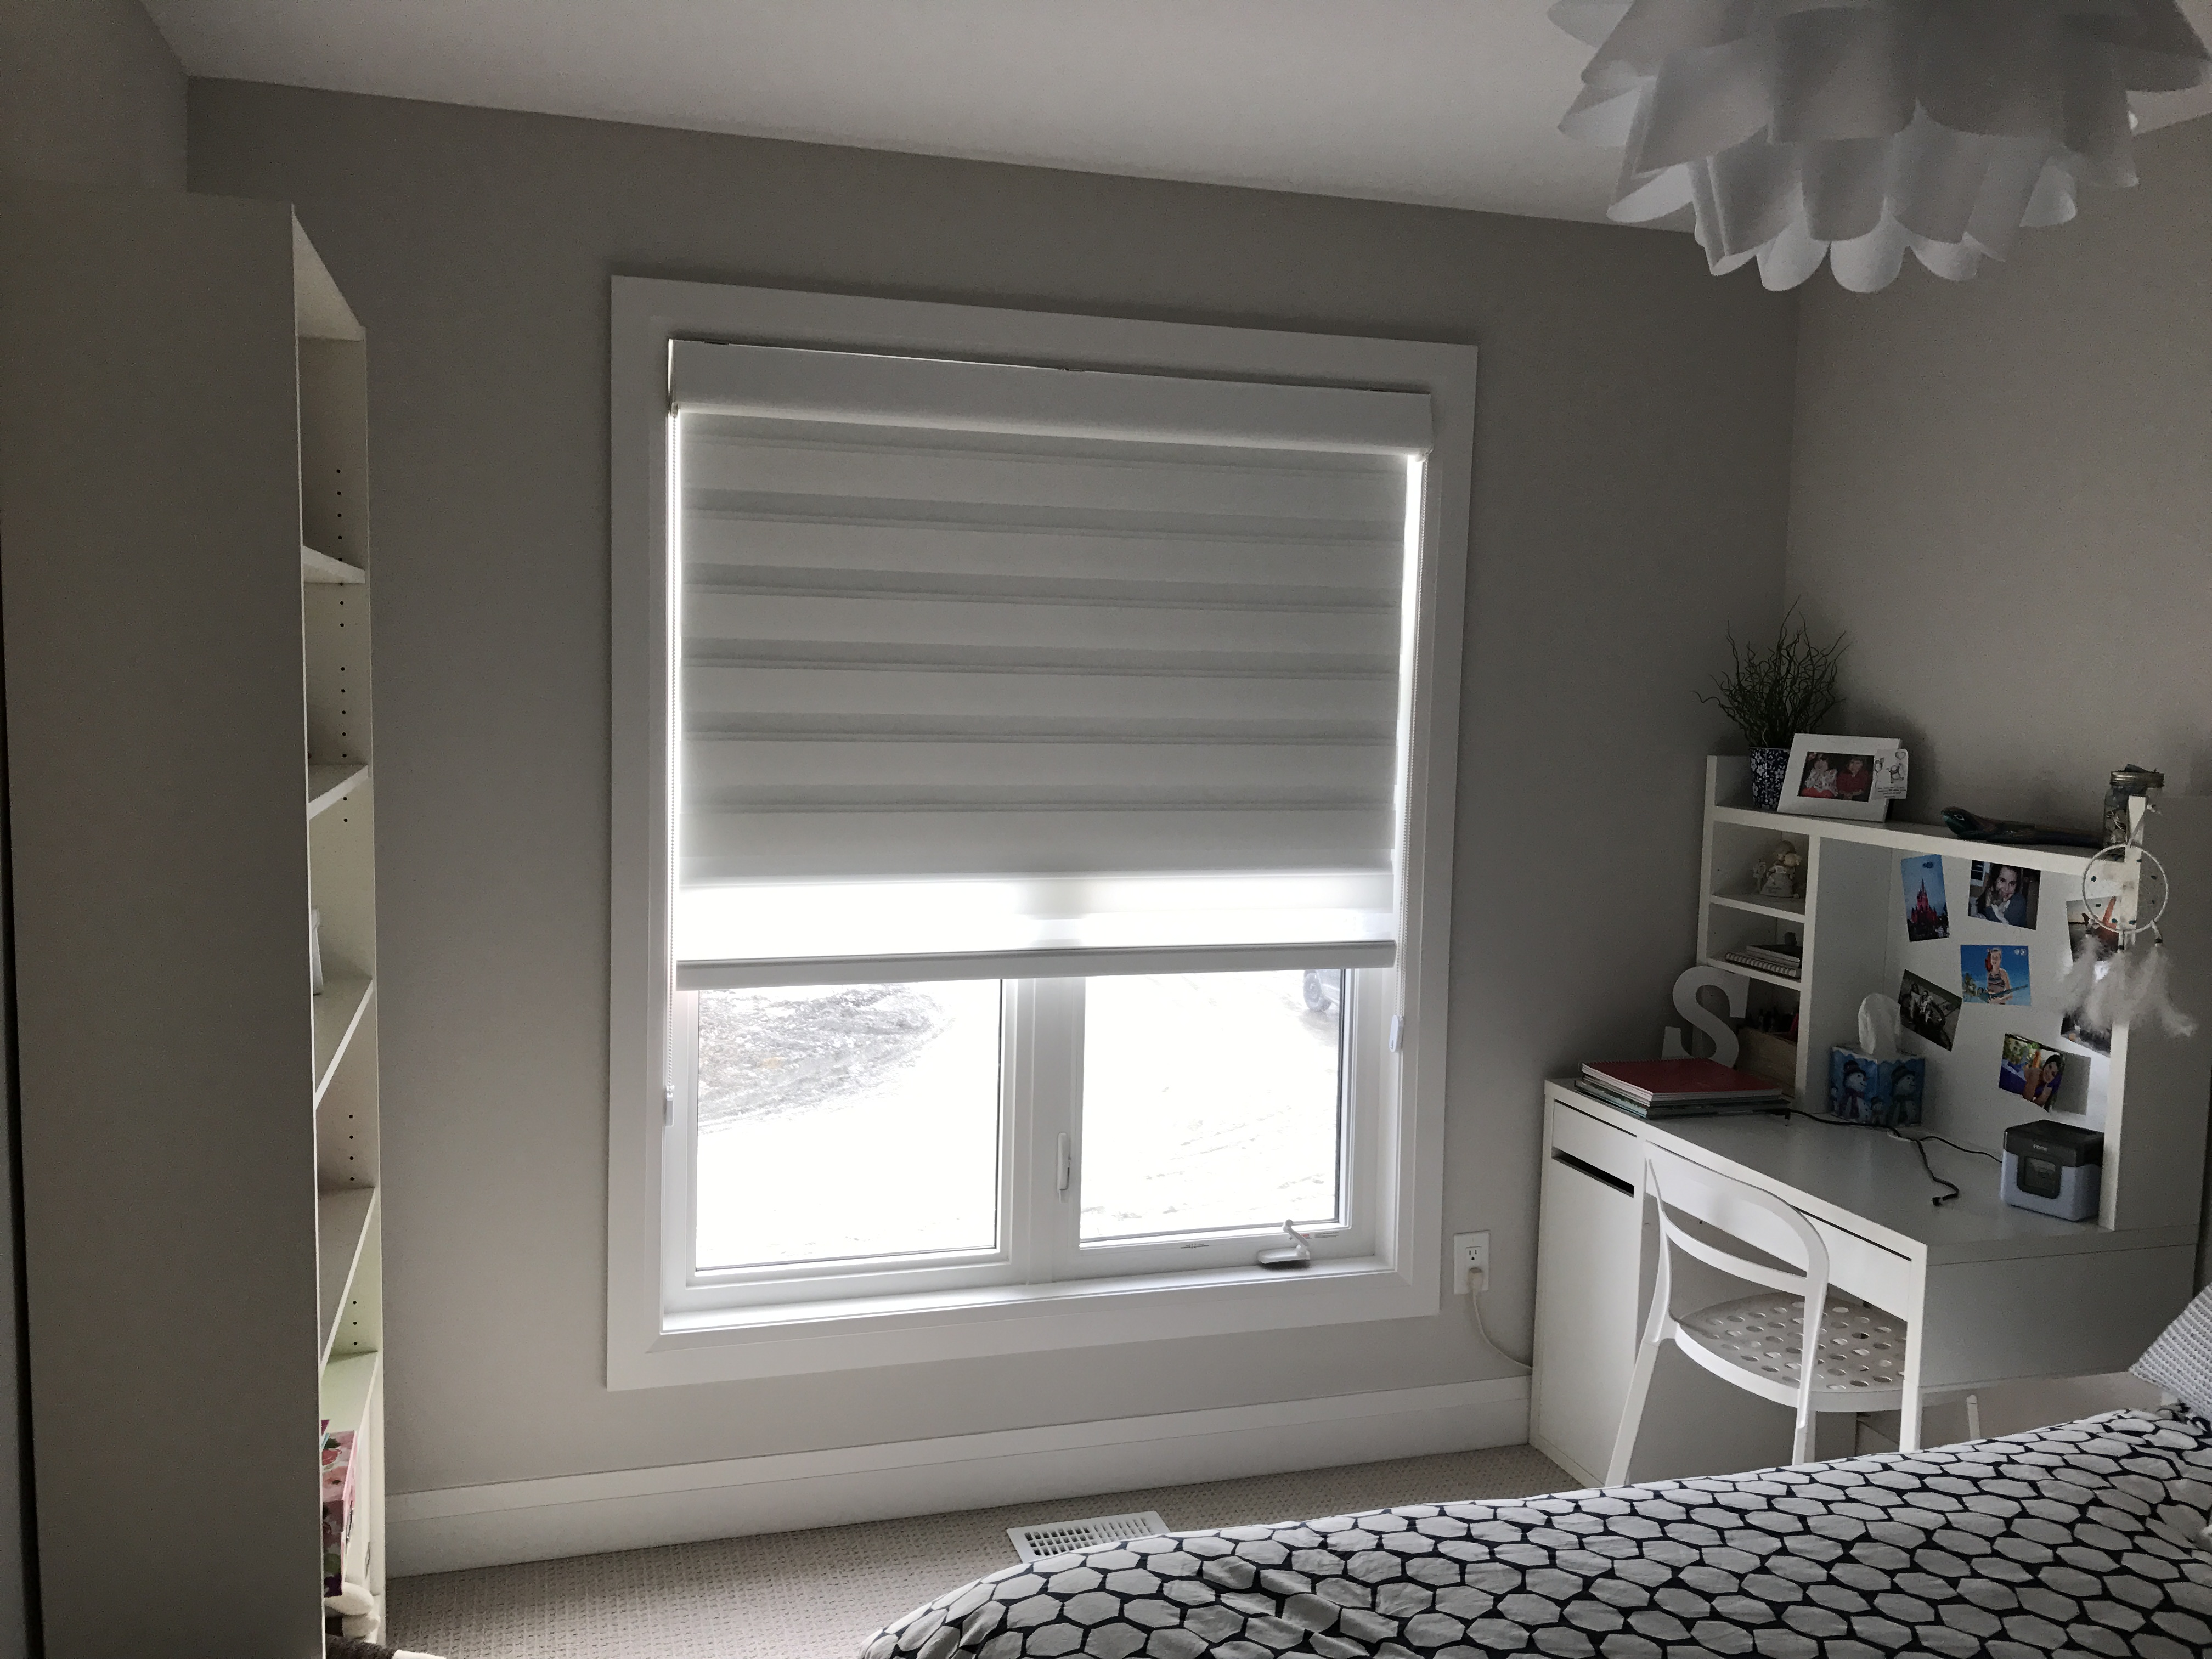 motorized of blinds the benefits shiners blind winnipeg window automated discover custom